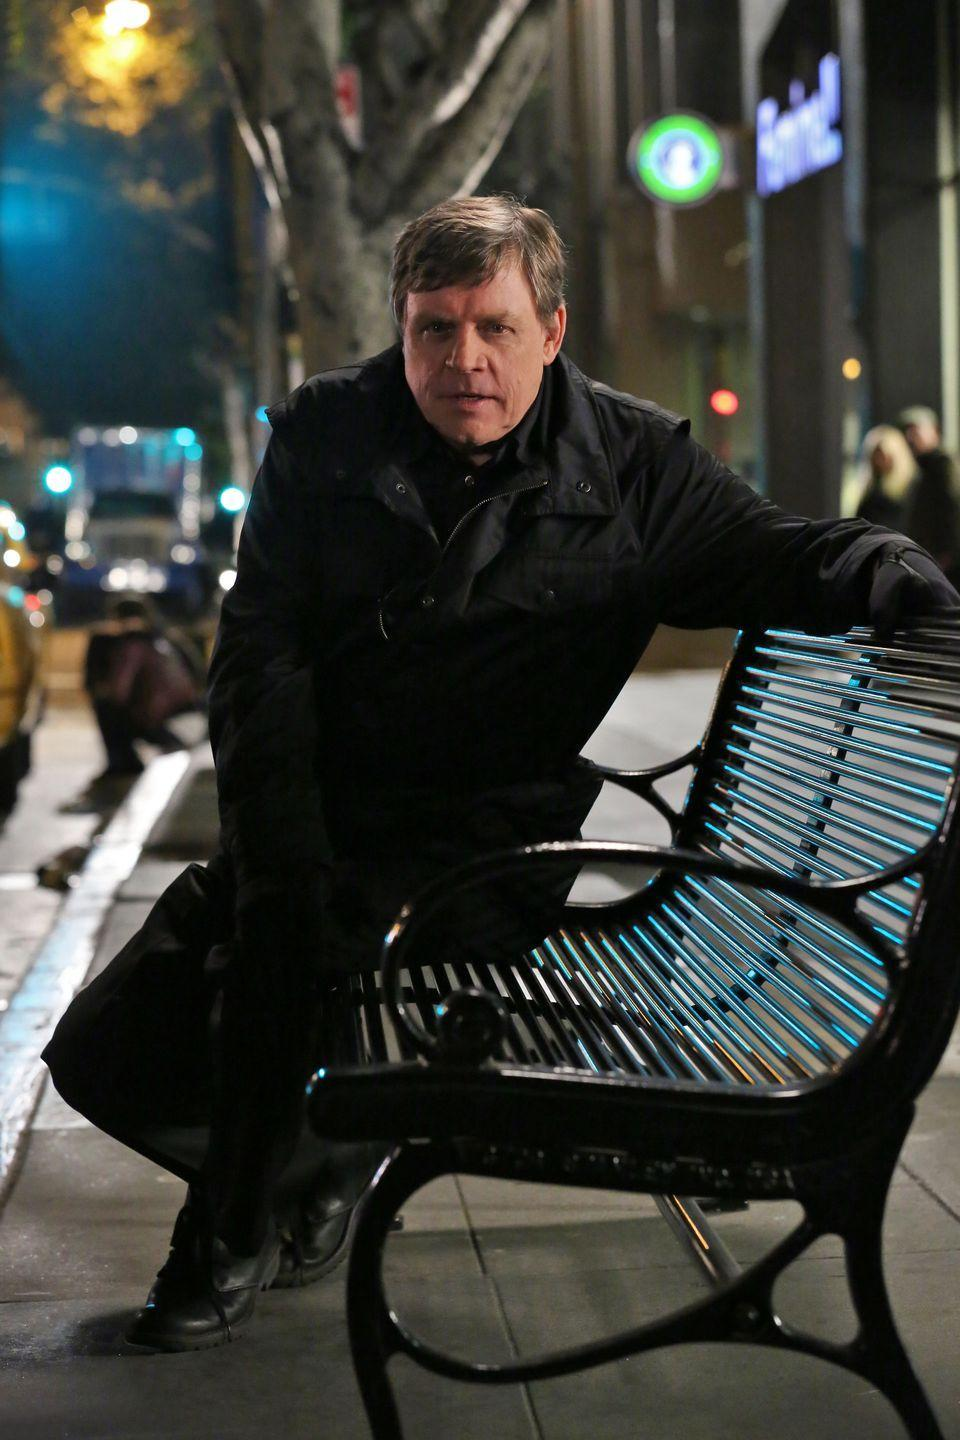 "<p>Mark Hamill tapped into the dark side of the Force for his role of copycat serial killer John Curtis aka The Replicator. The Replicator taunts the BAU over the course of several episodes in season eight before it all comes together in an explosive (literally) season finale. </p><p>Mark told <a href=""https://www.buzzfeed.com/arianelange/criminal-minds-finale-mark-hamill-replicator"" rel=""nofollow noopener"" target=""_blank"" data-ylk=""slk:Buzzfeed"" class=""link rapid-noclick-resp"">Buzzfeed</a> that it was his daughter, who's a big fan of the show, who encouraged him to take the role. ""Usually you don't have an arc like this where they set up something over a period of many, many episodes,"" he said of the character. ""As soon as I started watching these episodes, I said, 'Oh, I gotta do this!'""</p>"